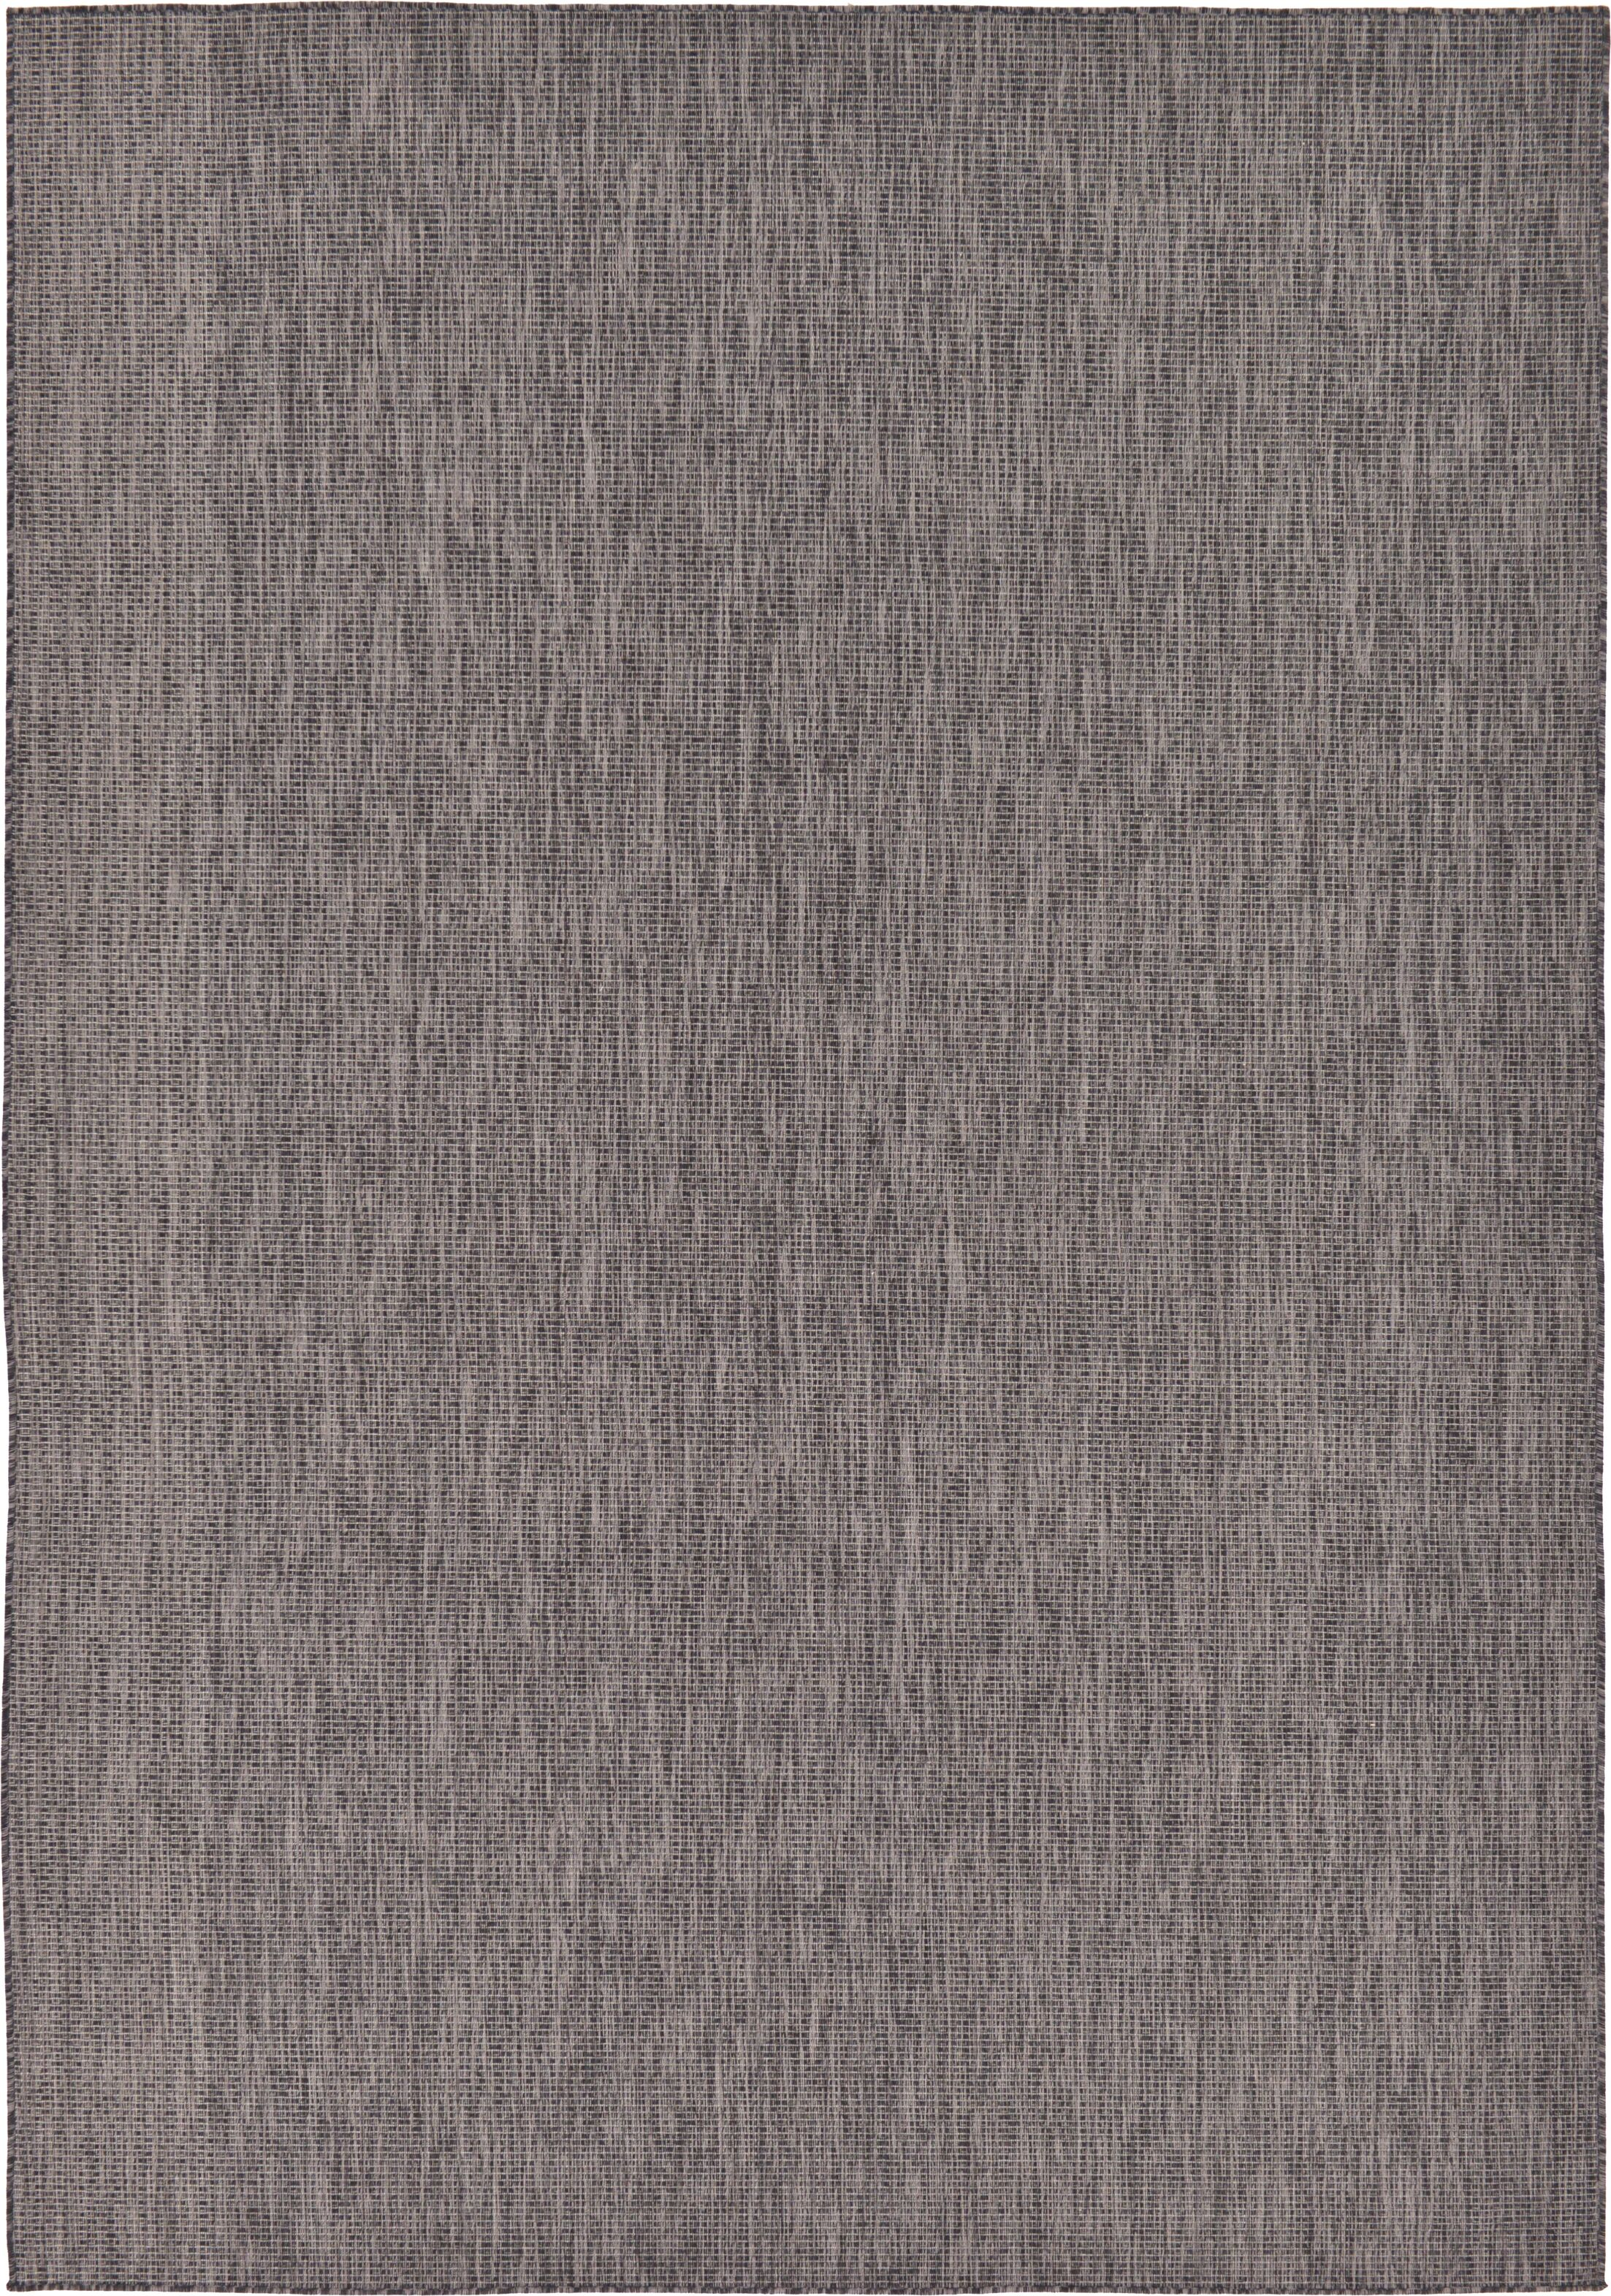 Janet Black Area Rug Rug Size: Rectangle 8' x 11'4